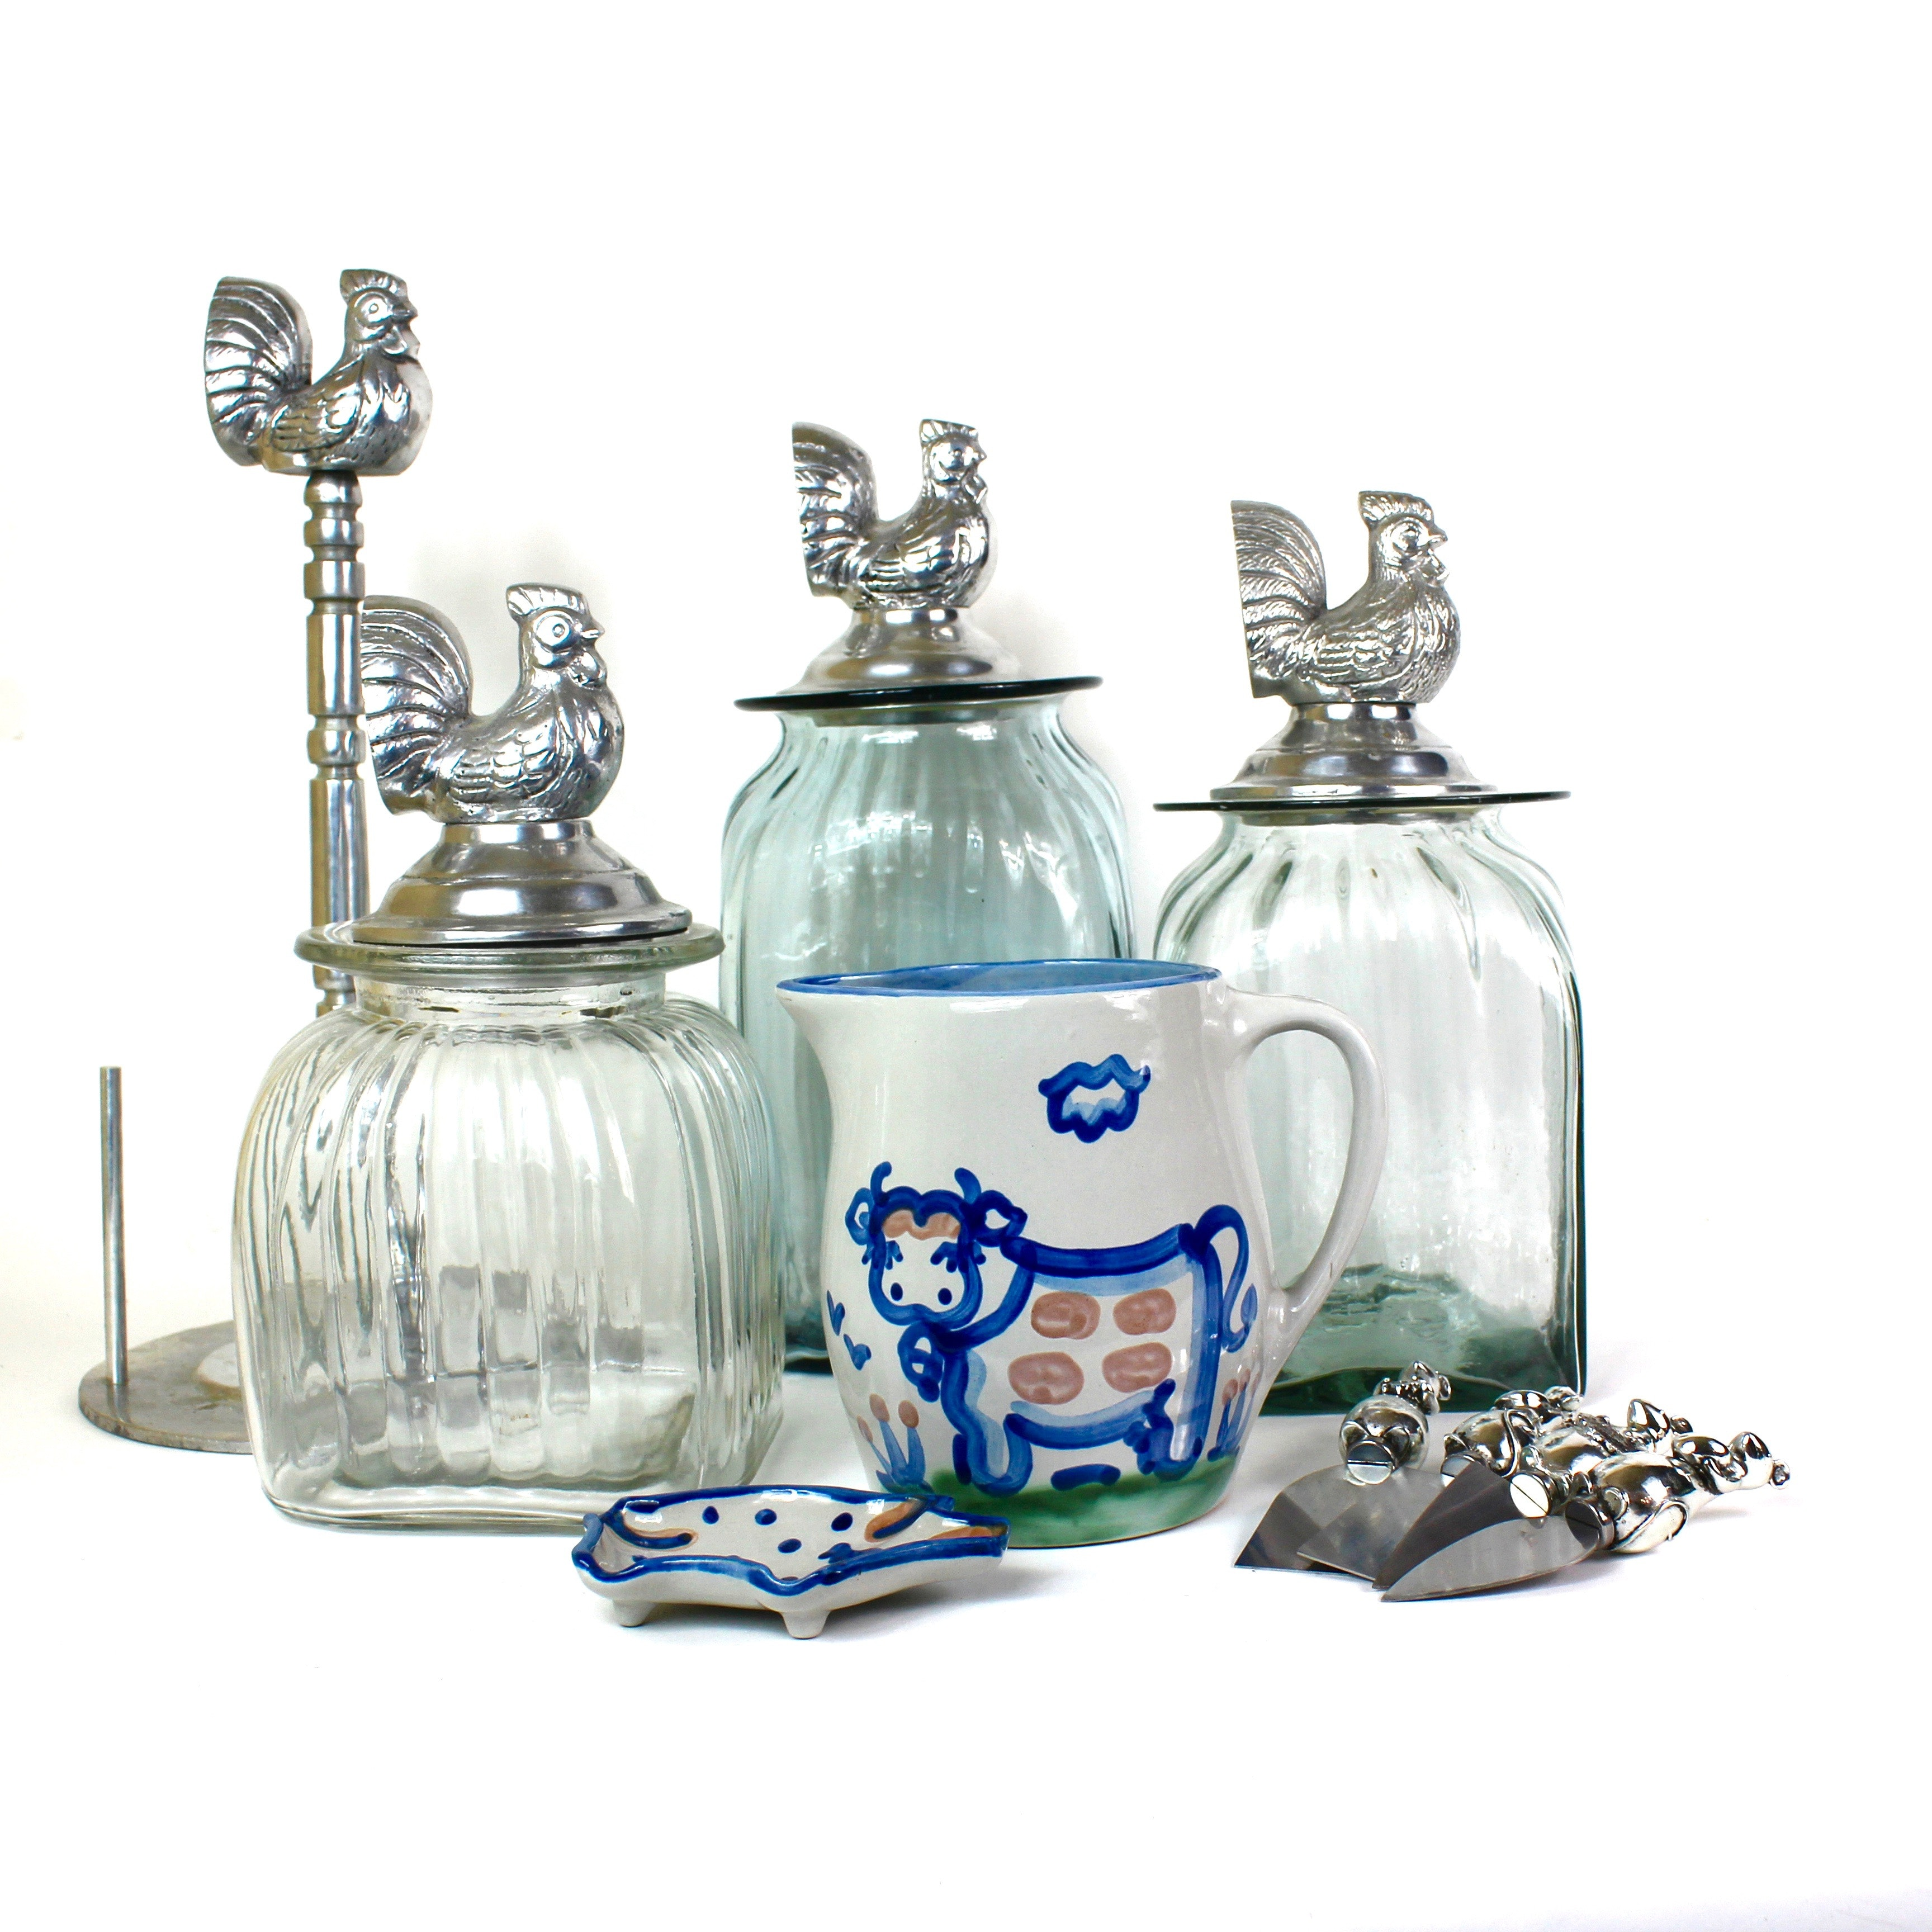 Blown Glass Chicken Canisters with M.A. Hadley Pottery